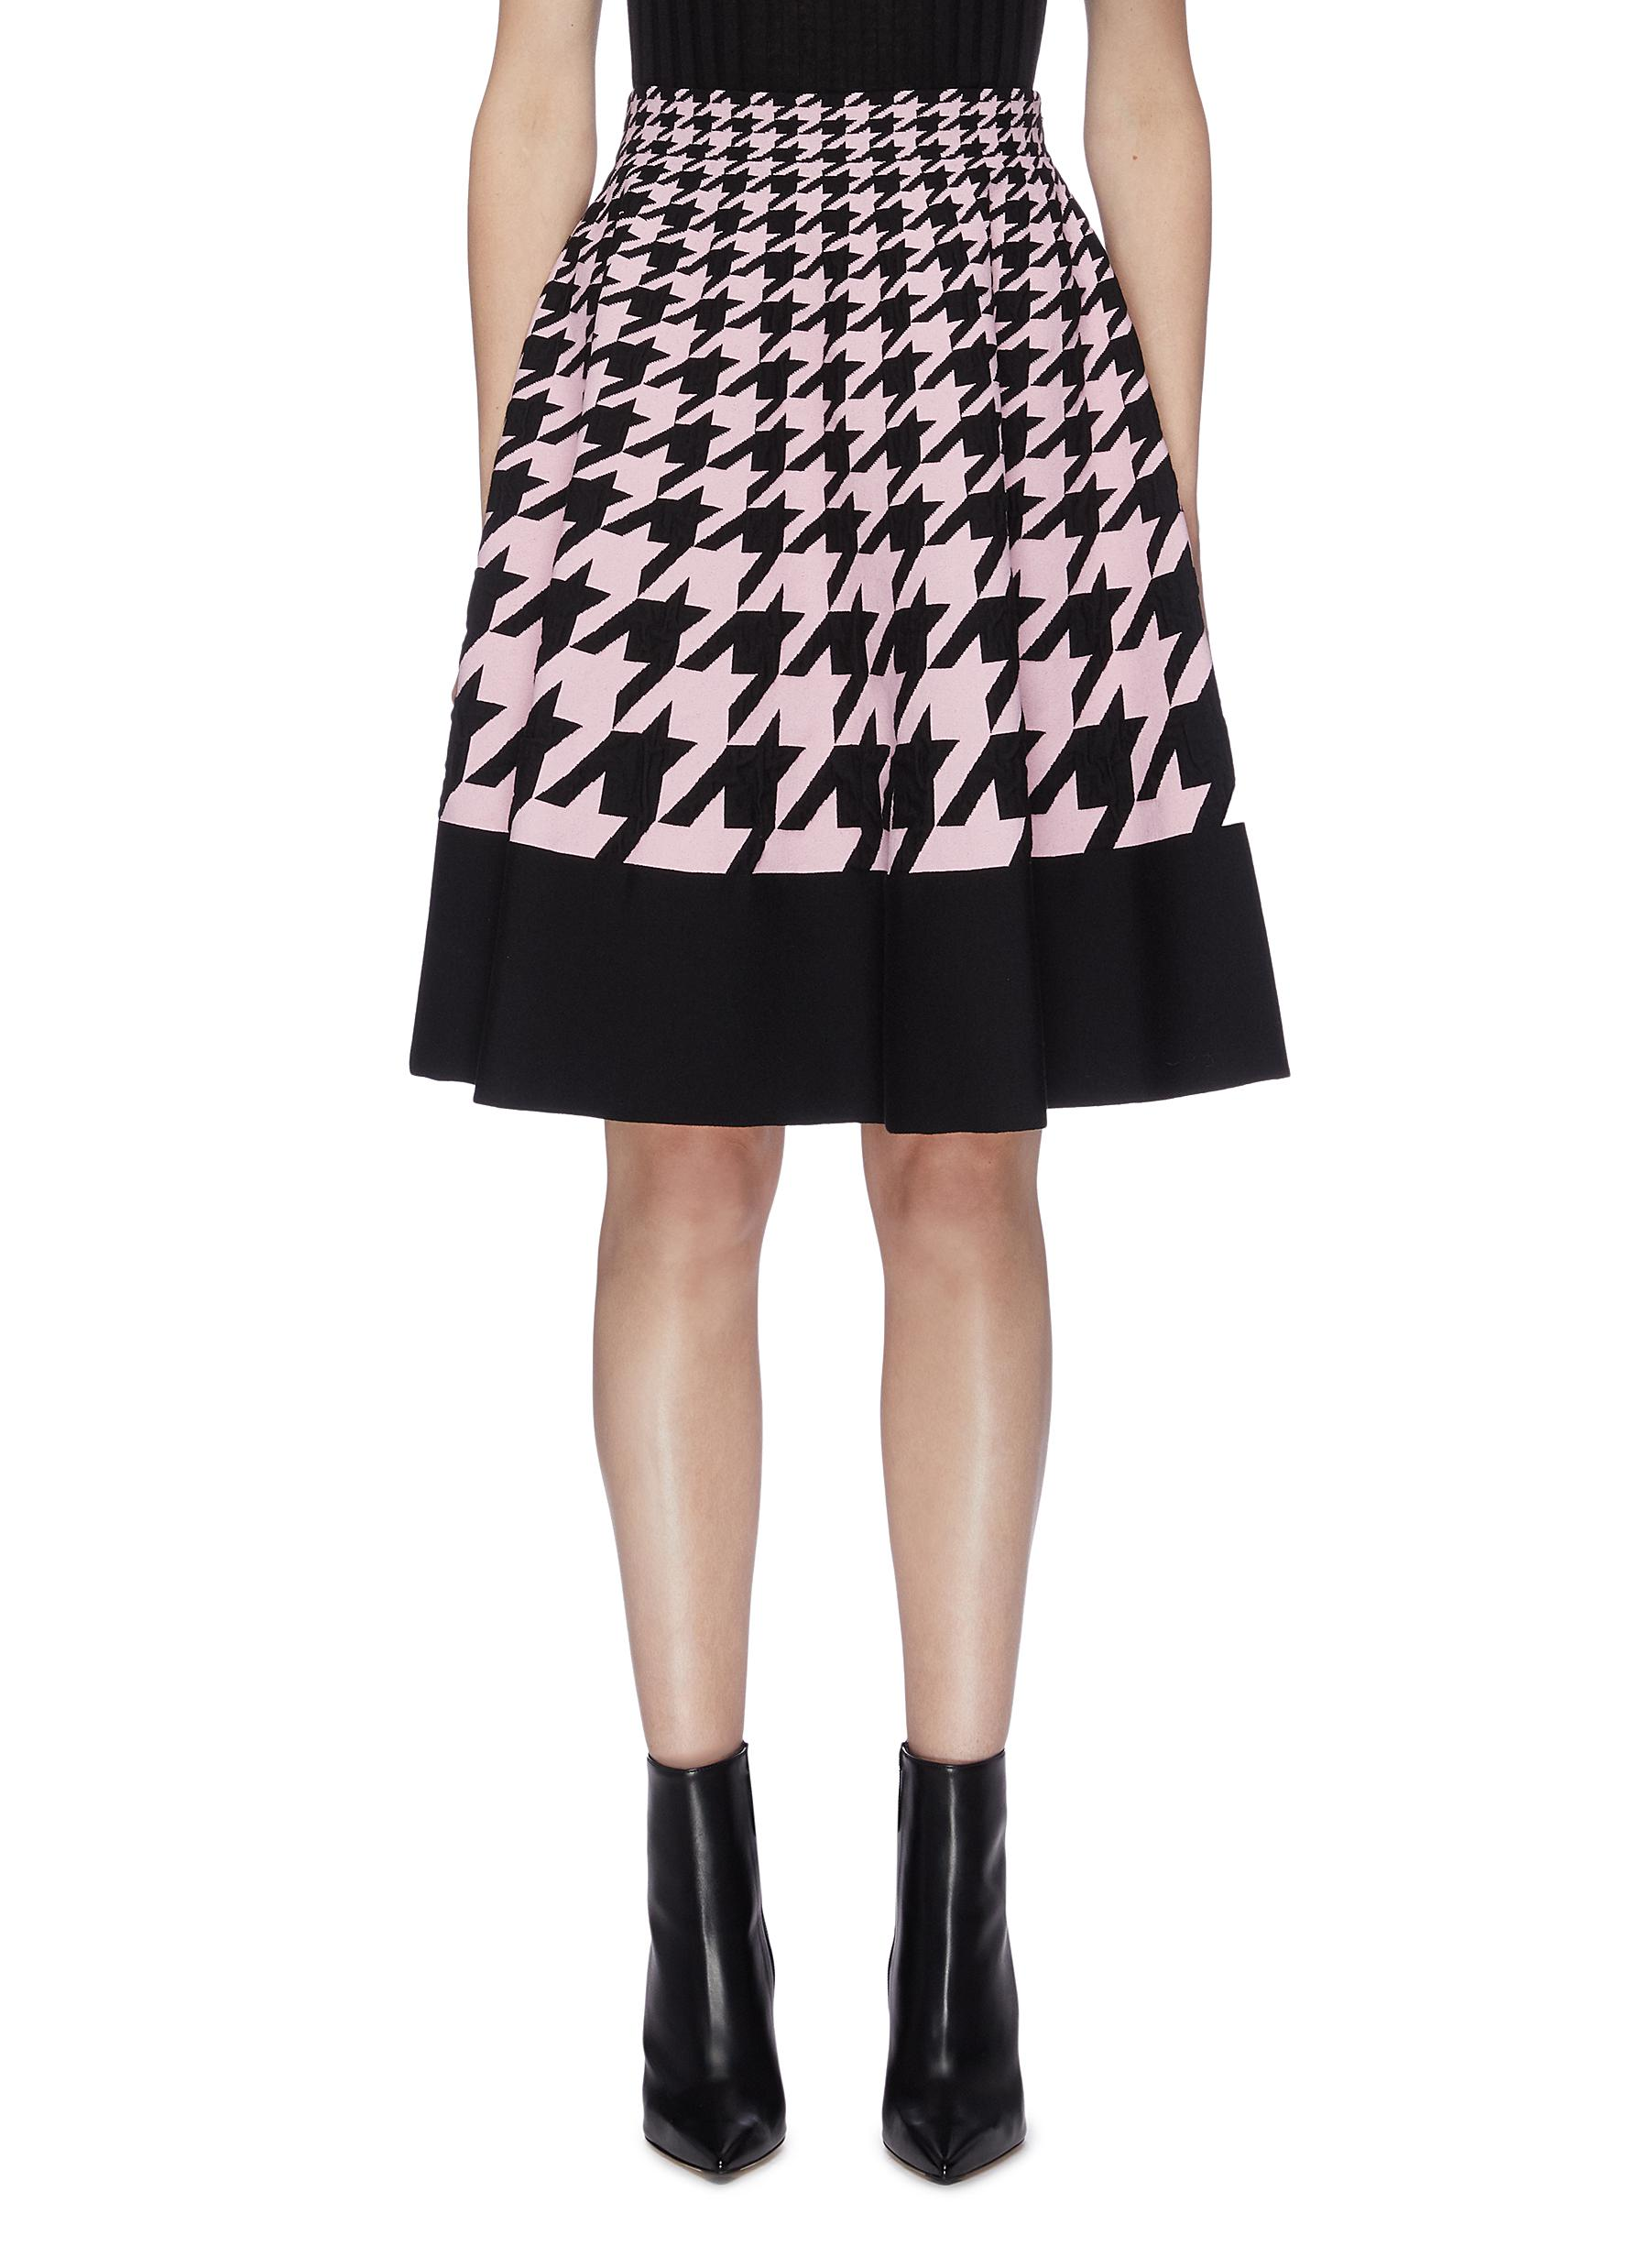 Houndstooth check jacquard pleated skirt by Alexander Mcqueen